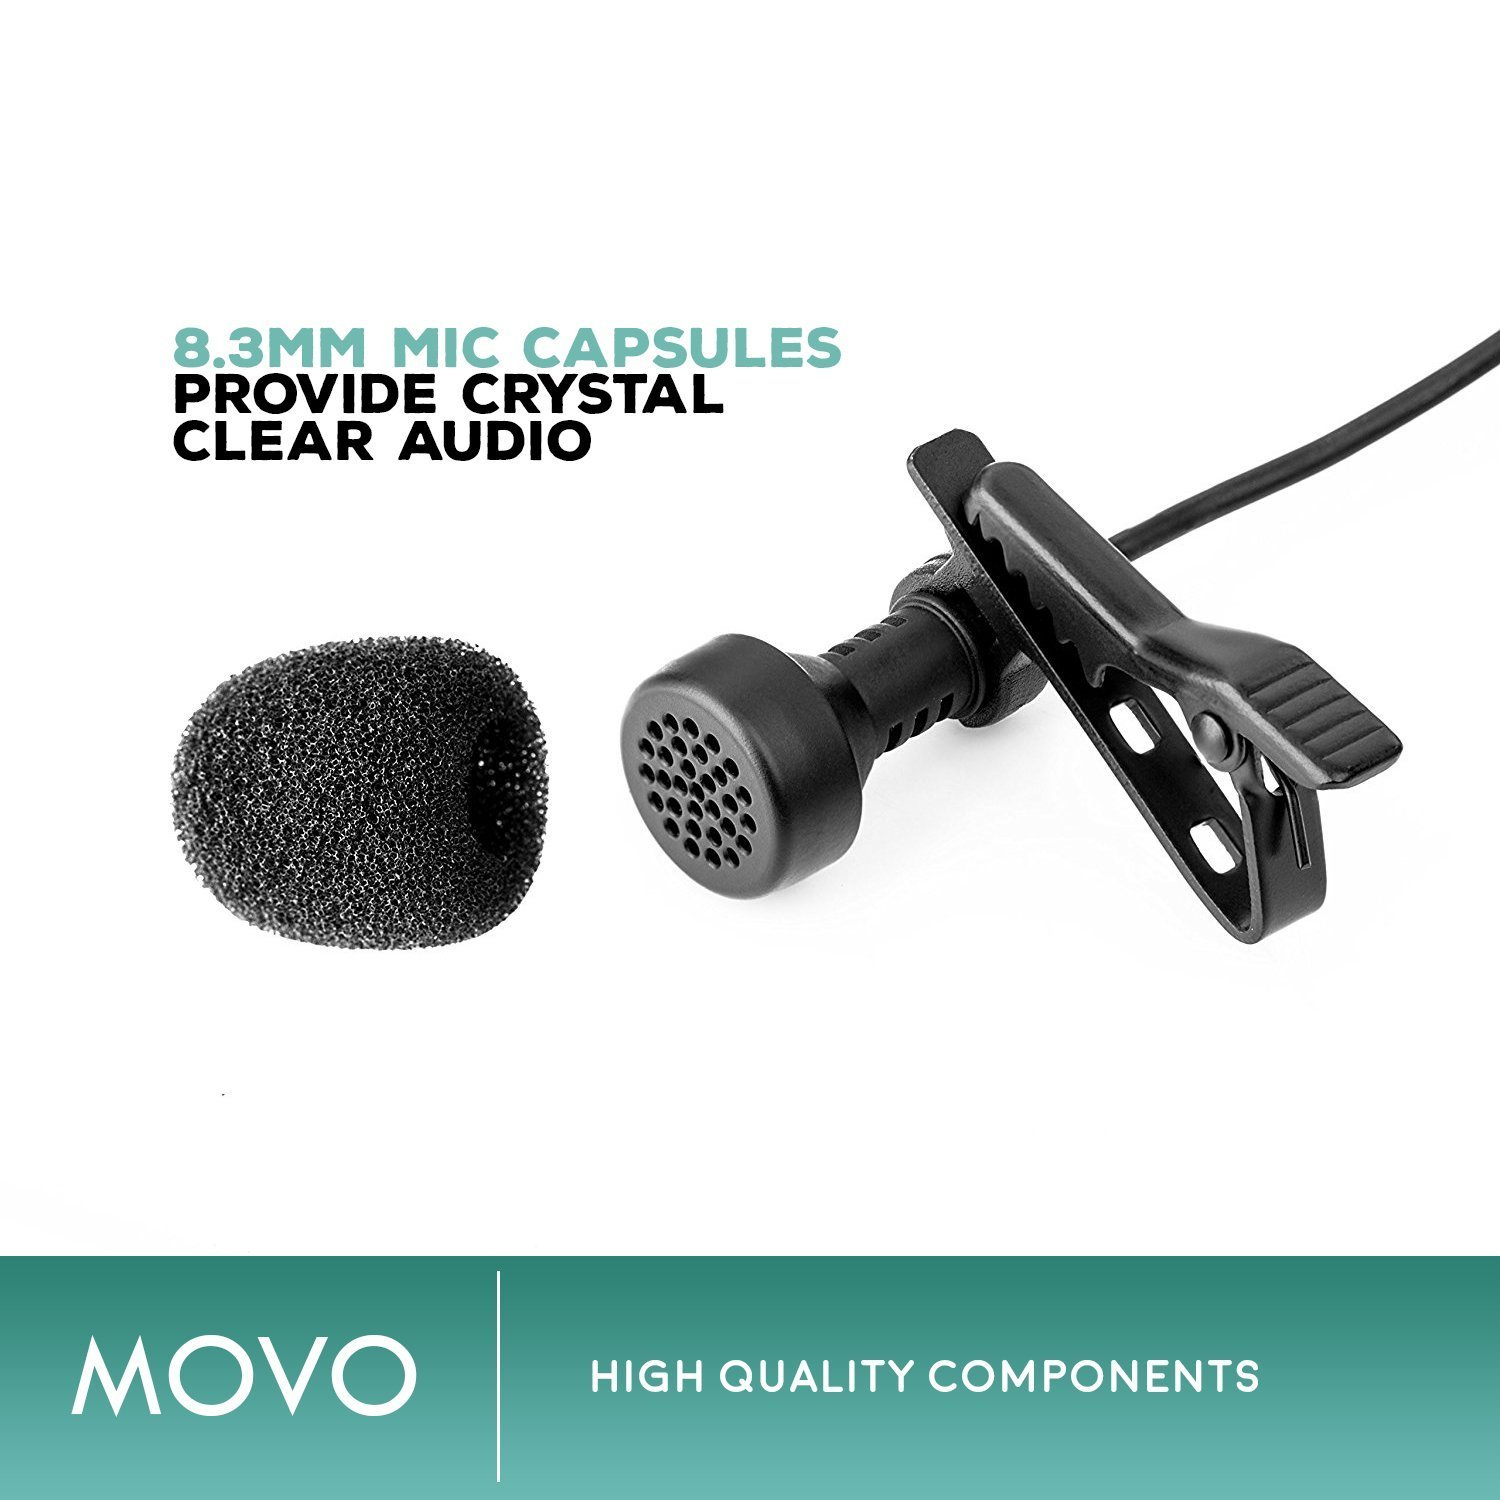 Zoom H4n PRO 4-Channel Handy Recorder Bundle with Movo Pro Grade Omnidirectional and Cardioid XLR Lavalier Microphones by Movo (Image #4)